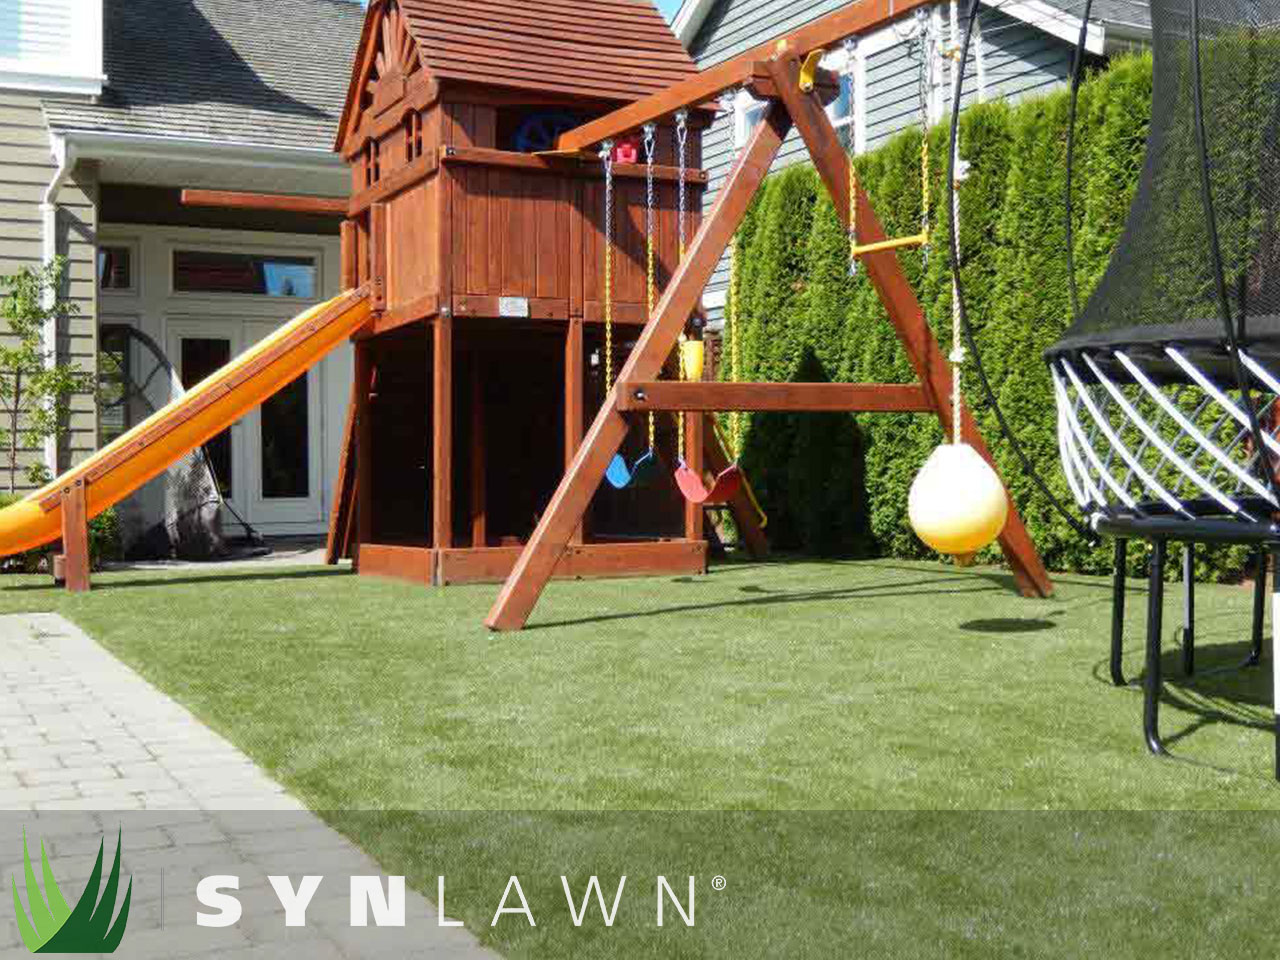 SYNLawn Playground Photo 15